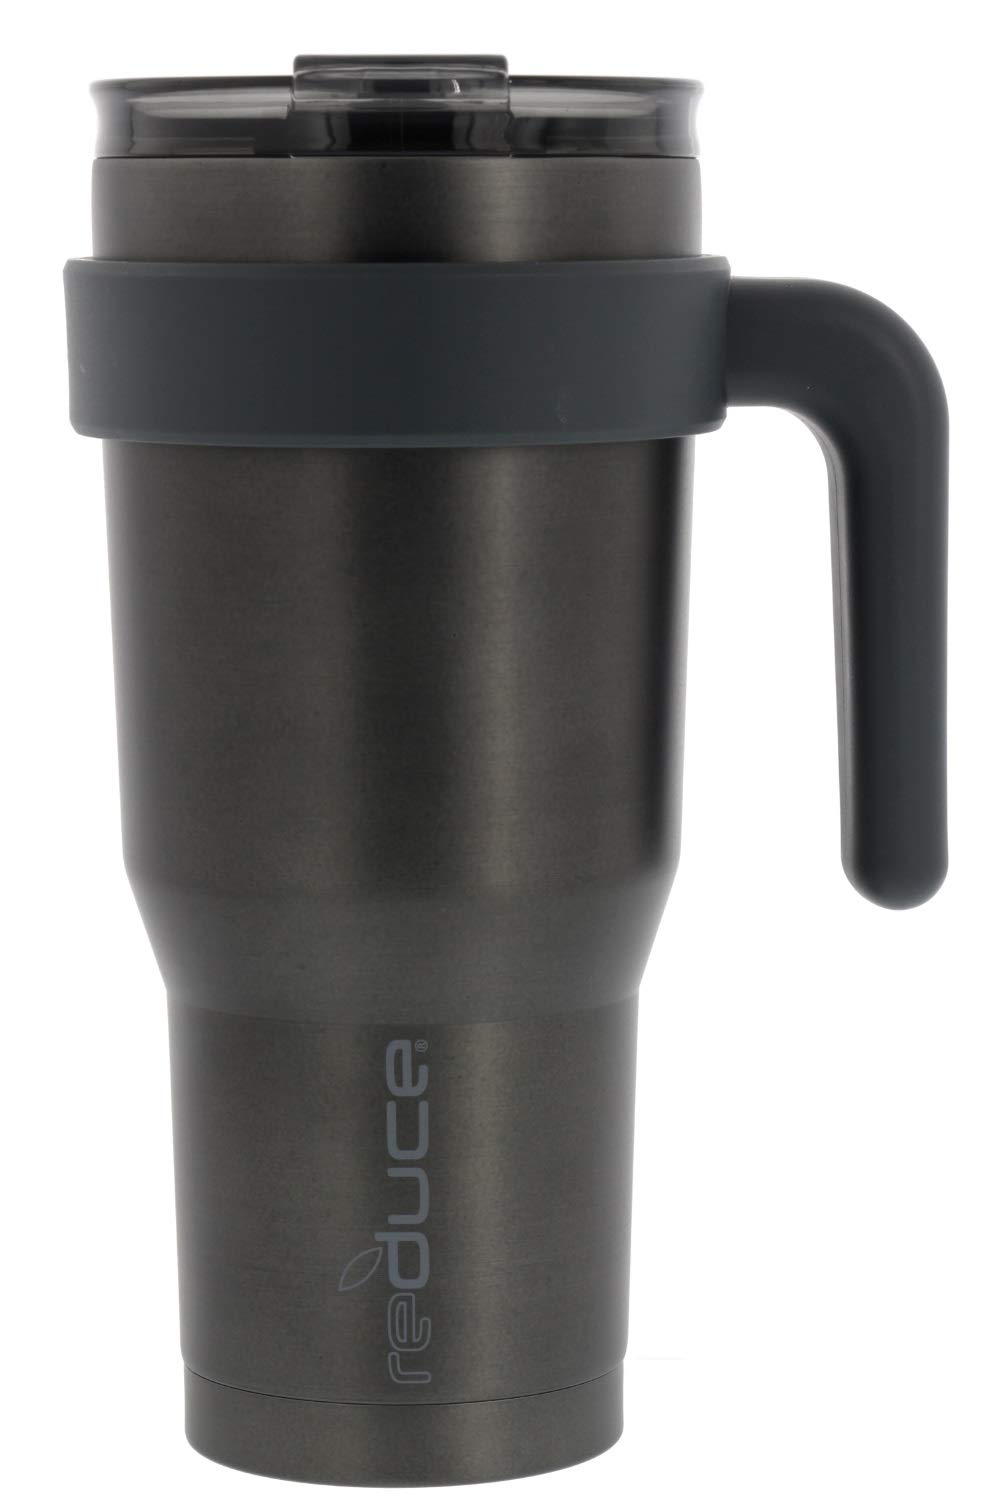 Reduce Hot-1 Travel Coffee Mug, 24 oz – An Ideal Coffee Travel Mug, Take Your Warm Drink on the Go – Stainless Steel Tumbler with Handle and Lid – Insulated Coffee Mug Fits in Car Cupholder